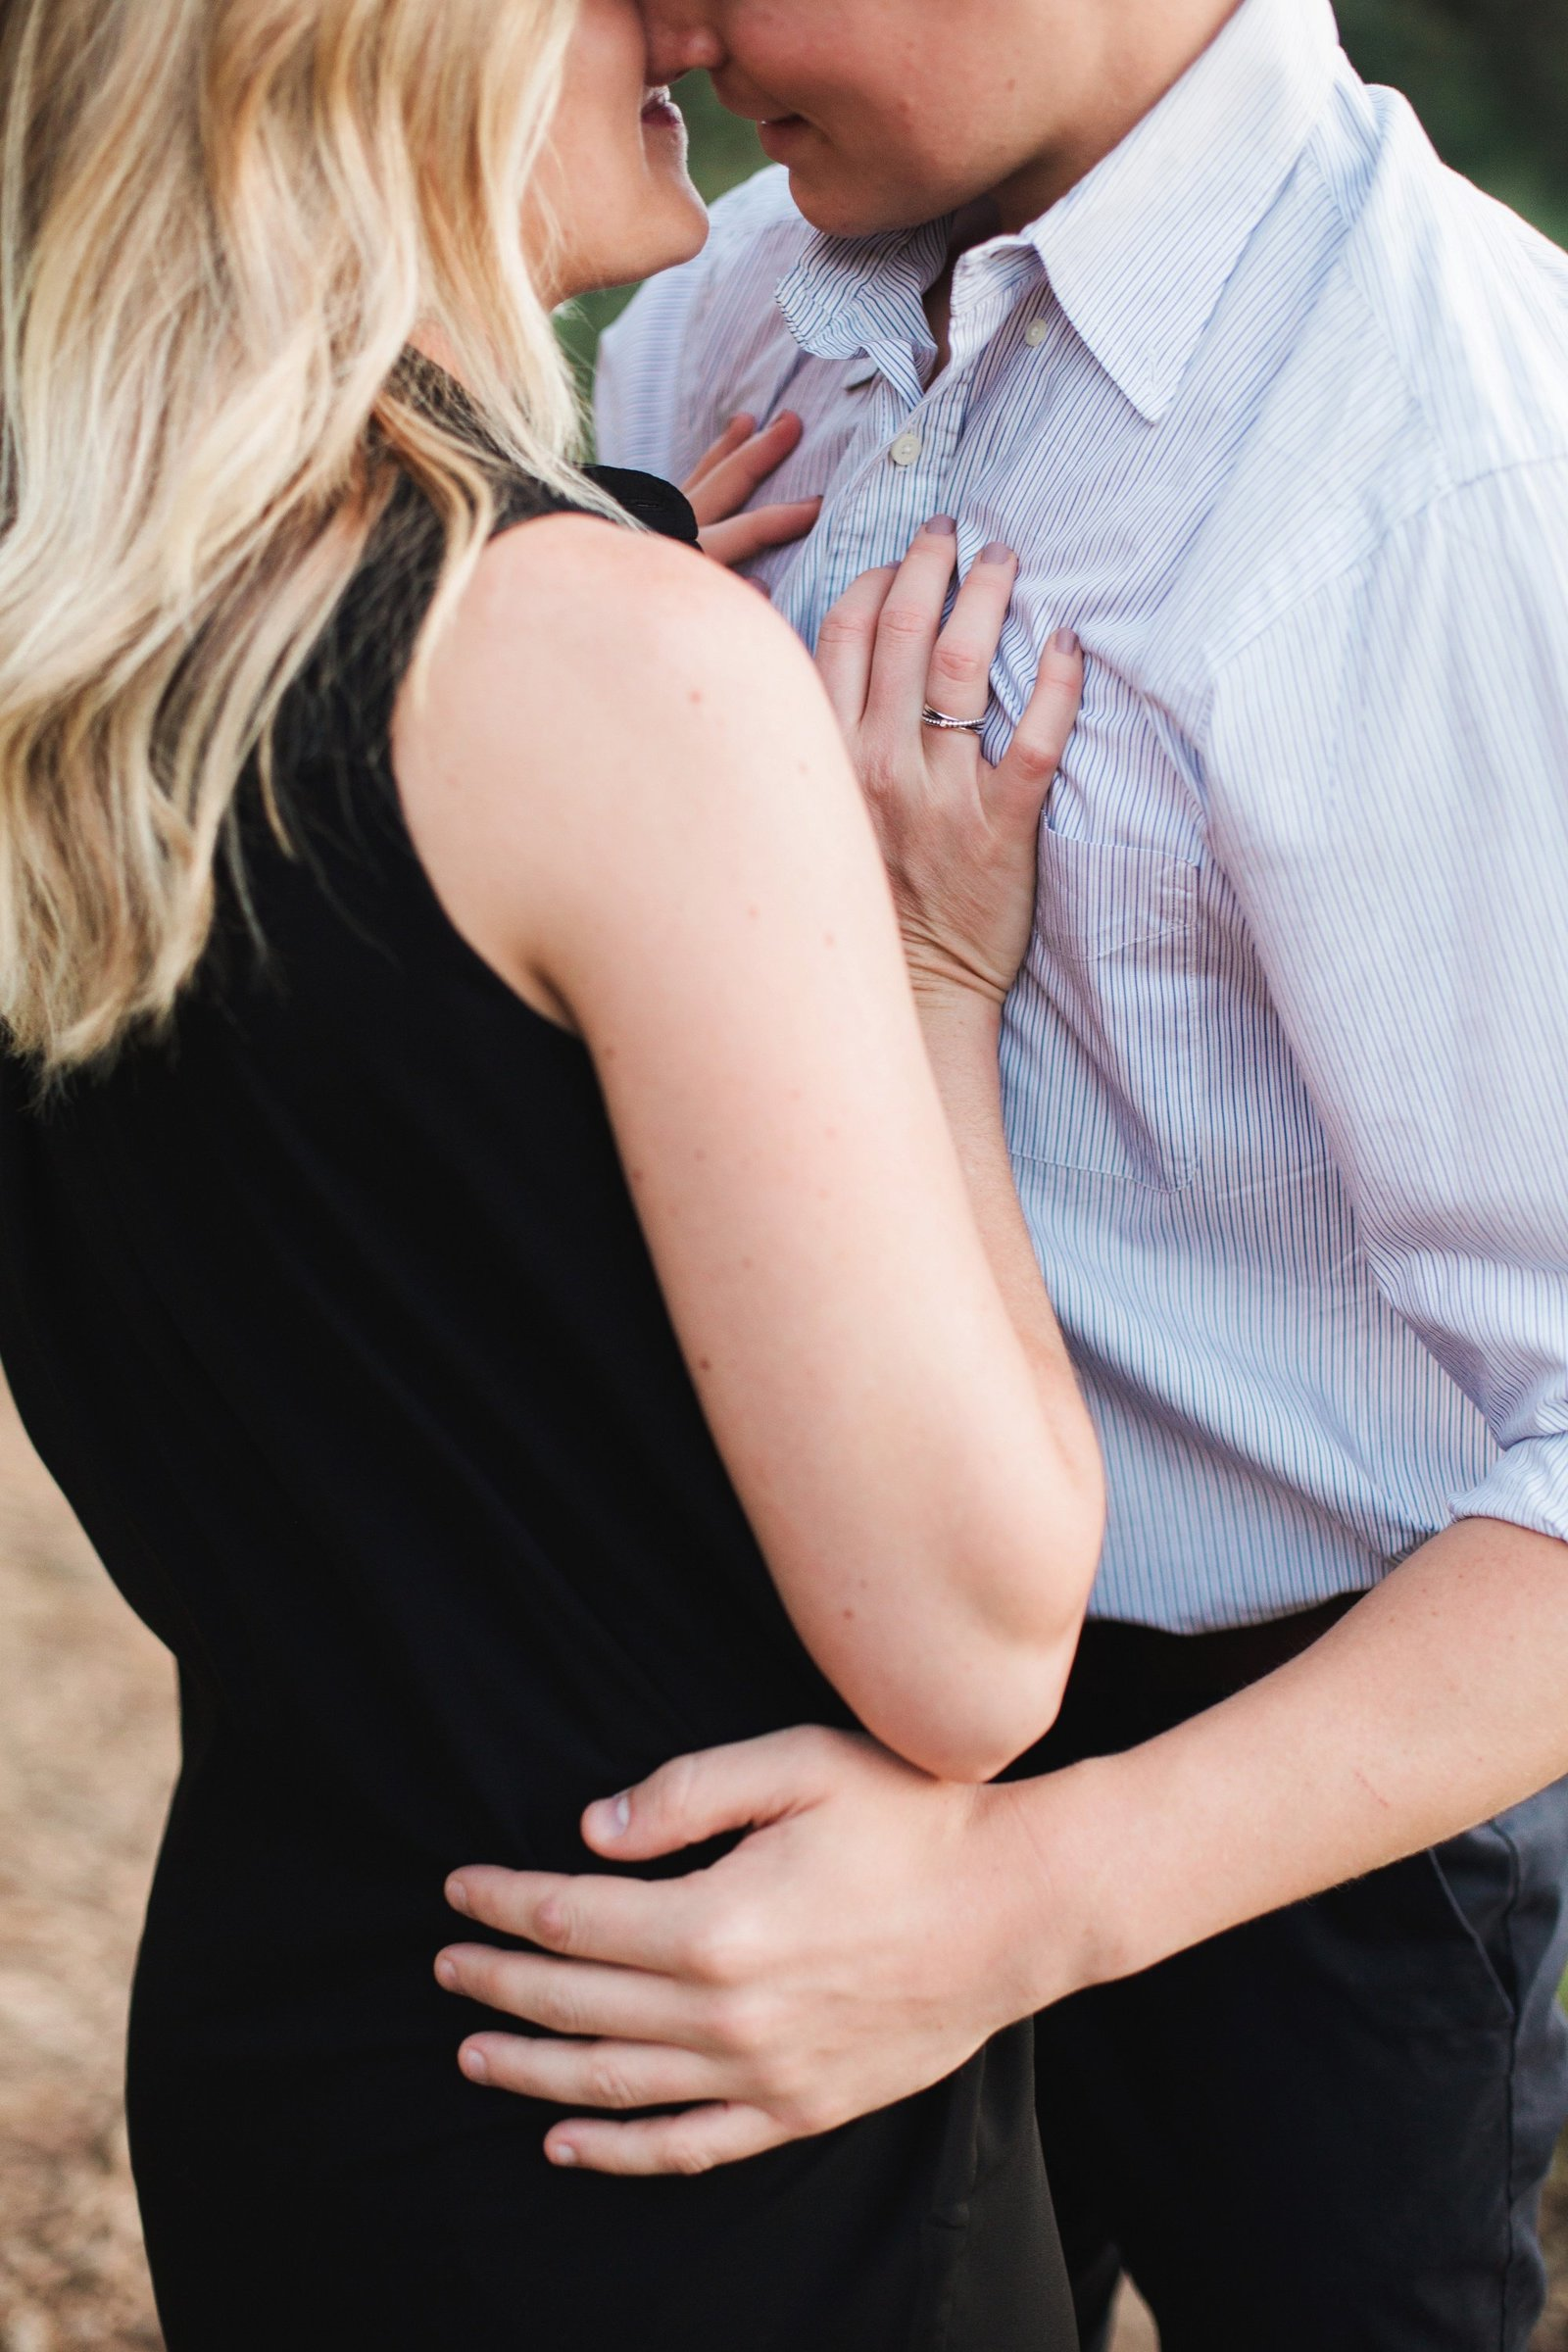 Engagements -Denver Lookout Mountain Engagement Session Golden Colorado Wedding Photographer Overlook City Lights Nature Outdoors Valley Light Couple (6)